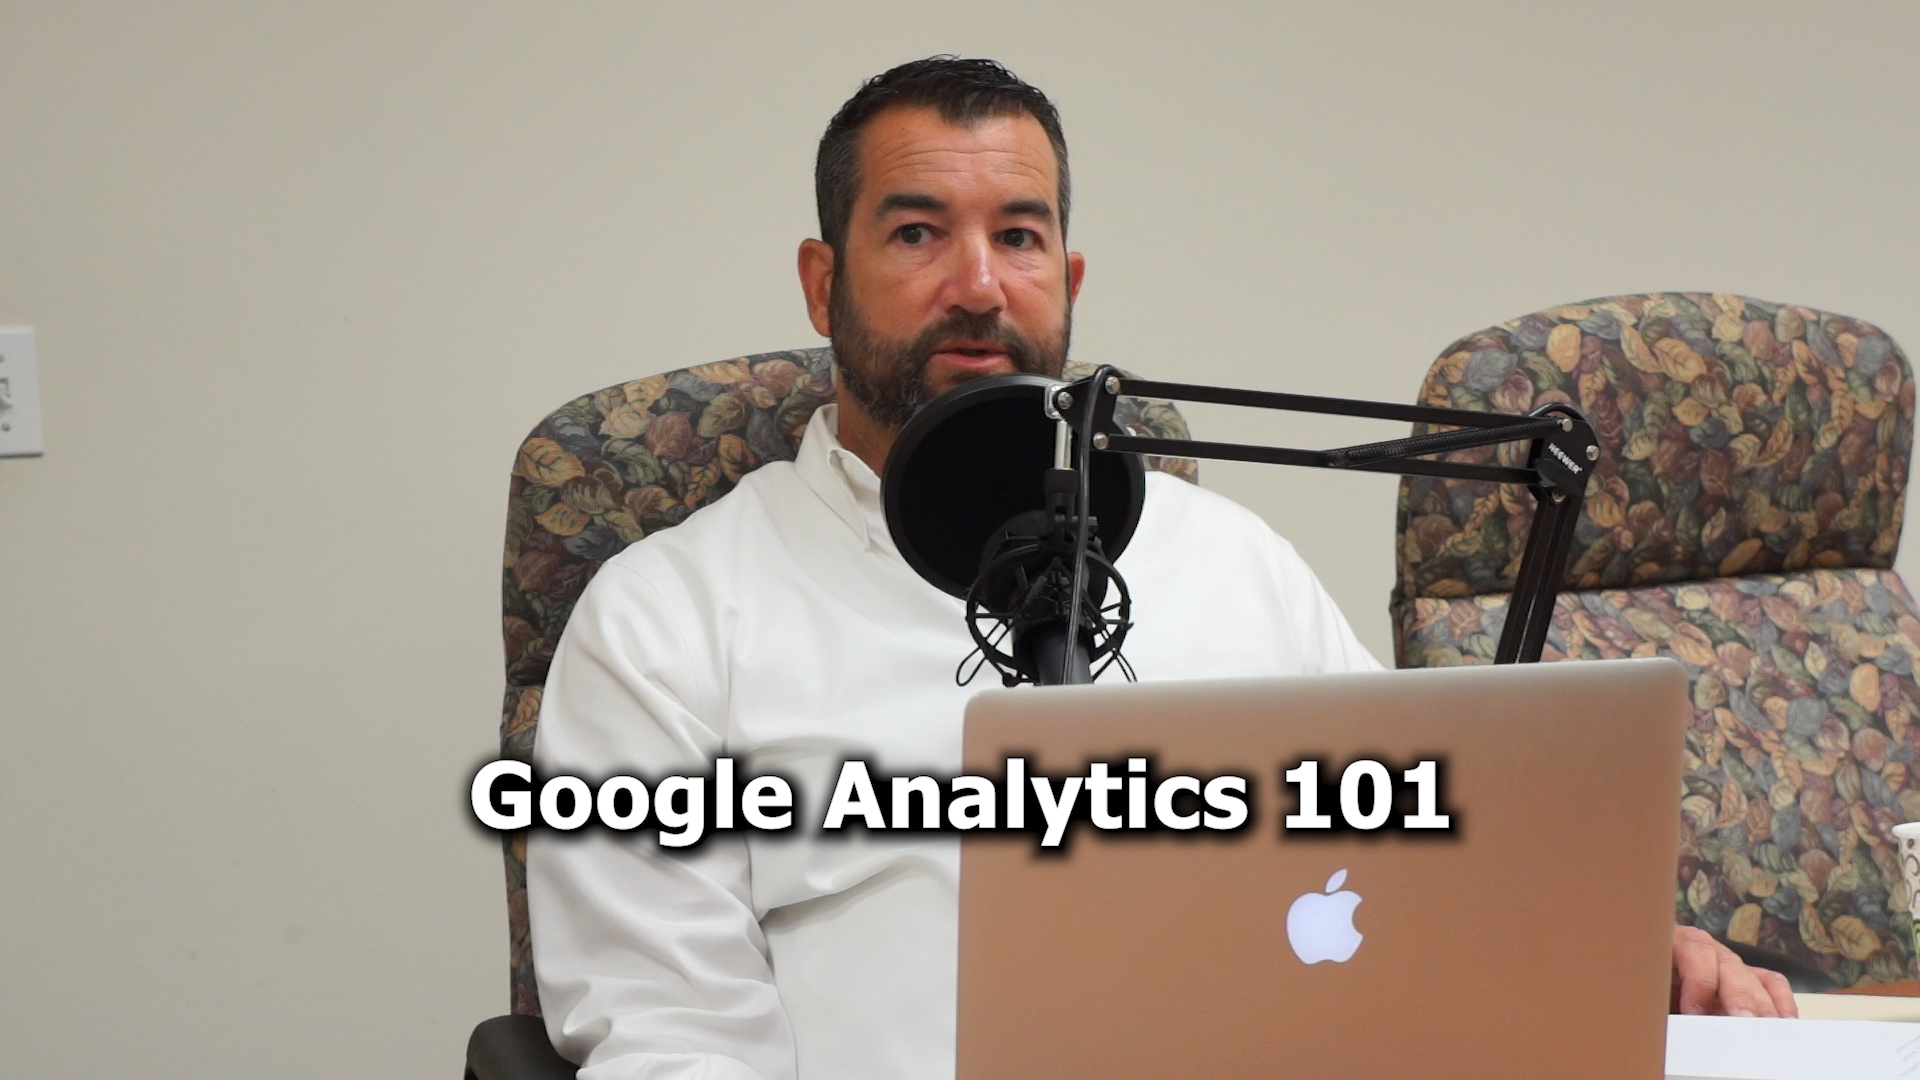 How to Use Google Analytics - The Messengers Podcast